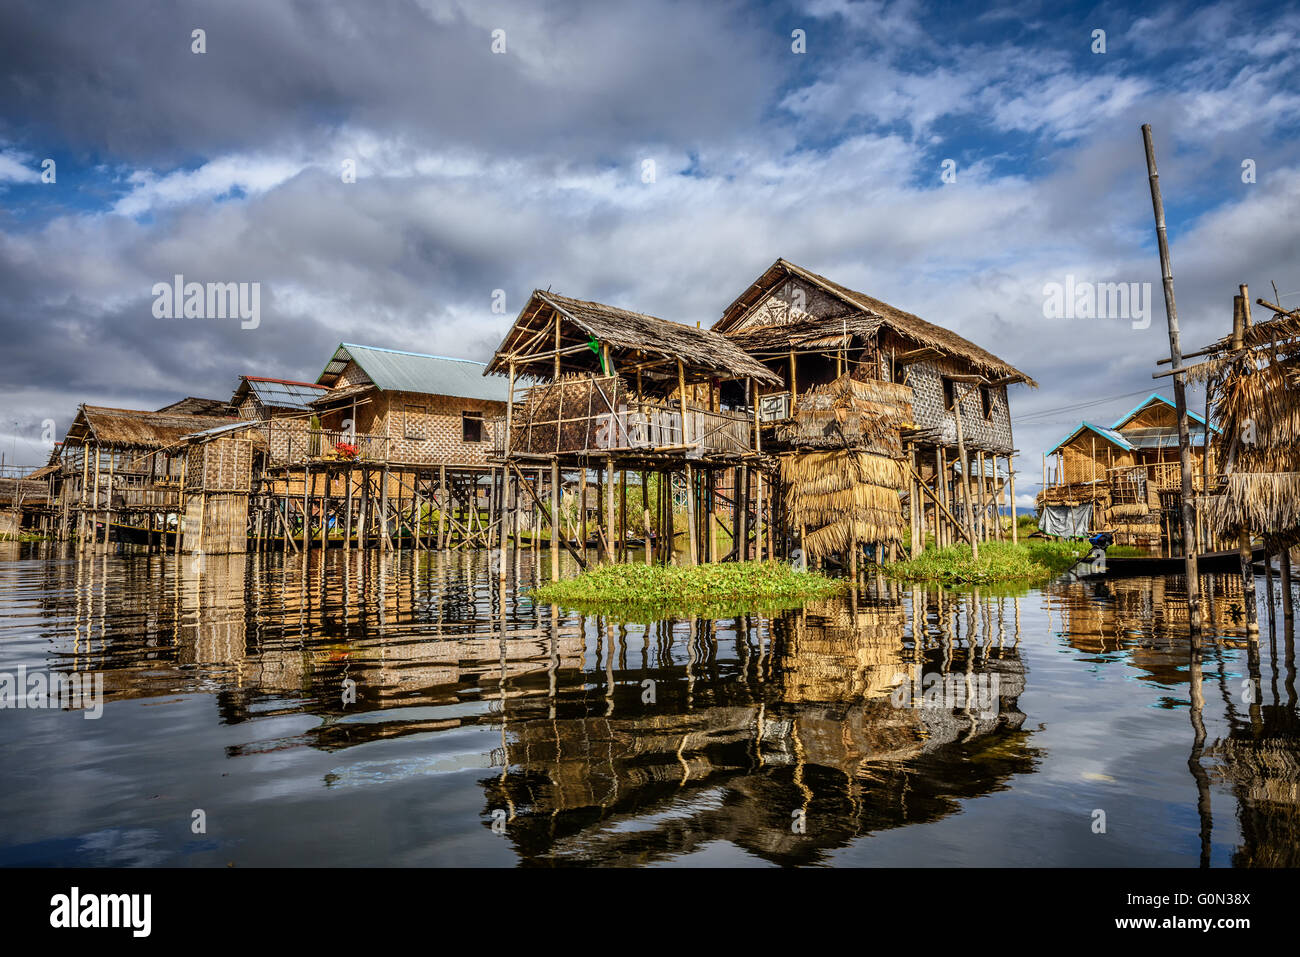 Wooden houses on piles inhabited by the tribe of Inthar, Inle Lake, Myanmar - Stock Image